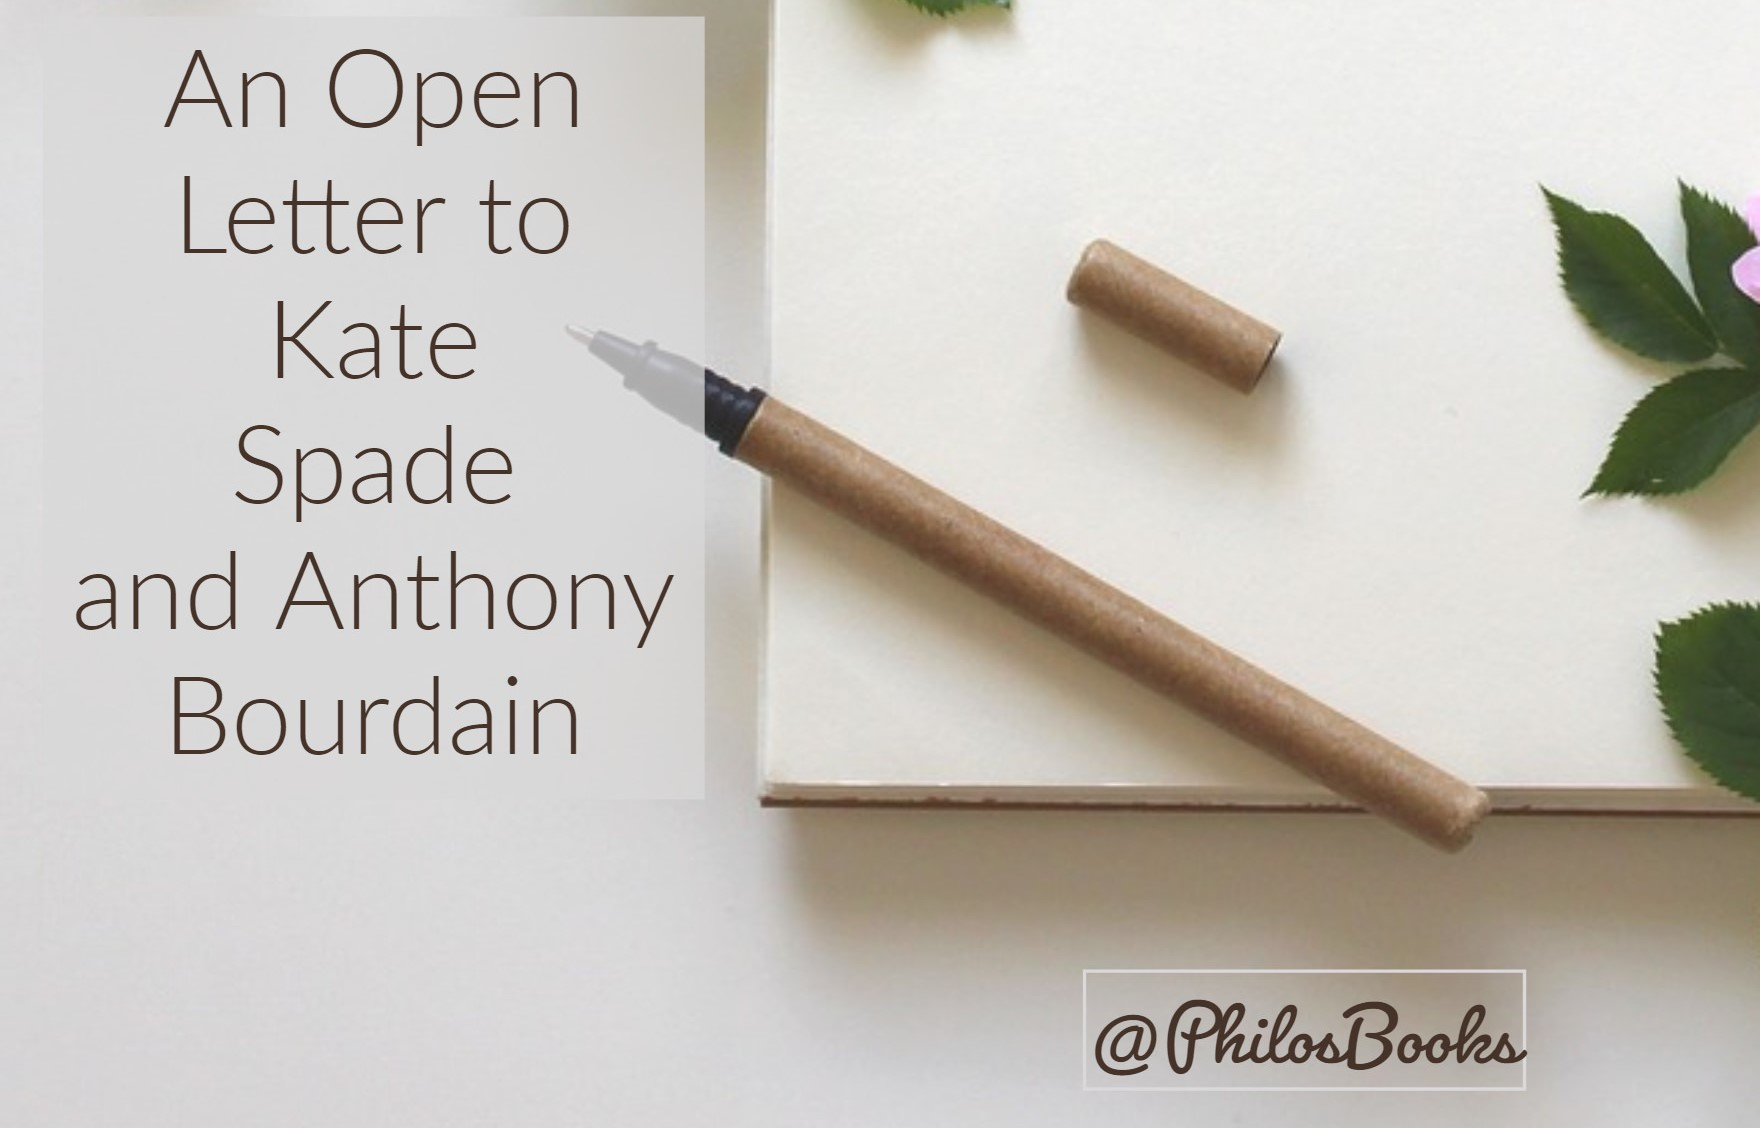 Death of Kate Spade and Anthony Bourdain